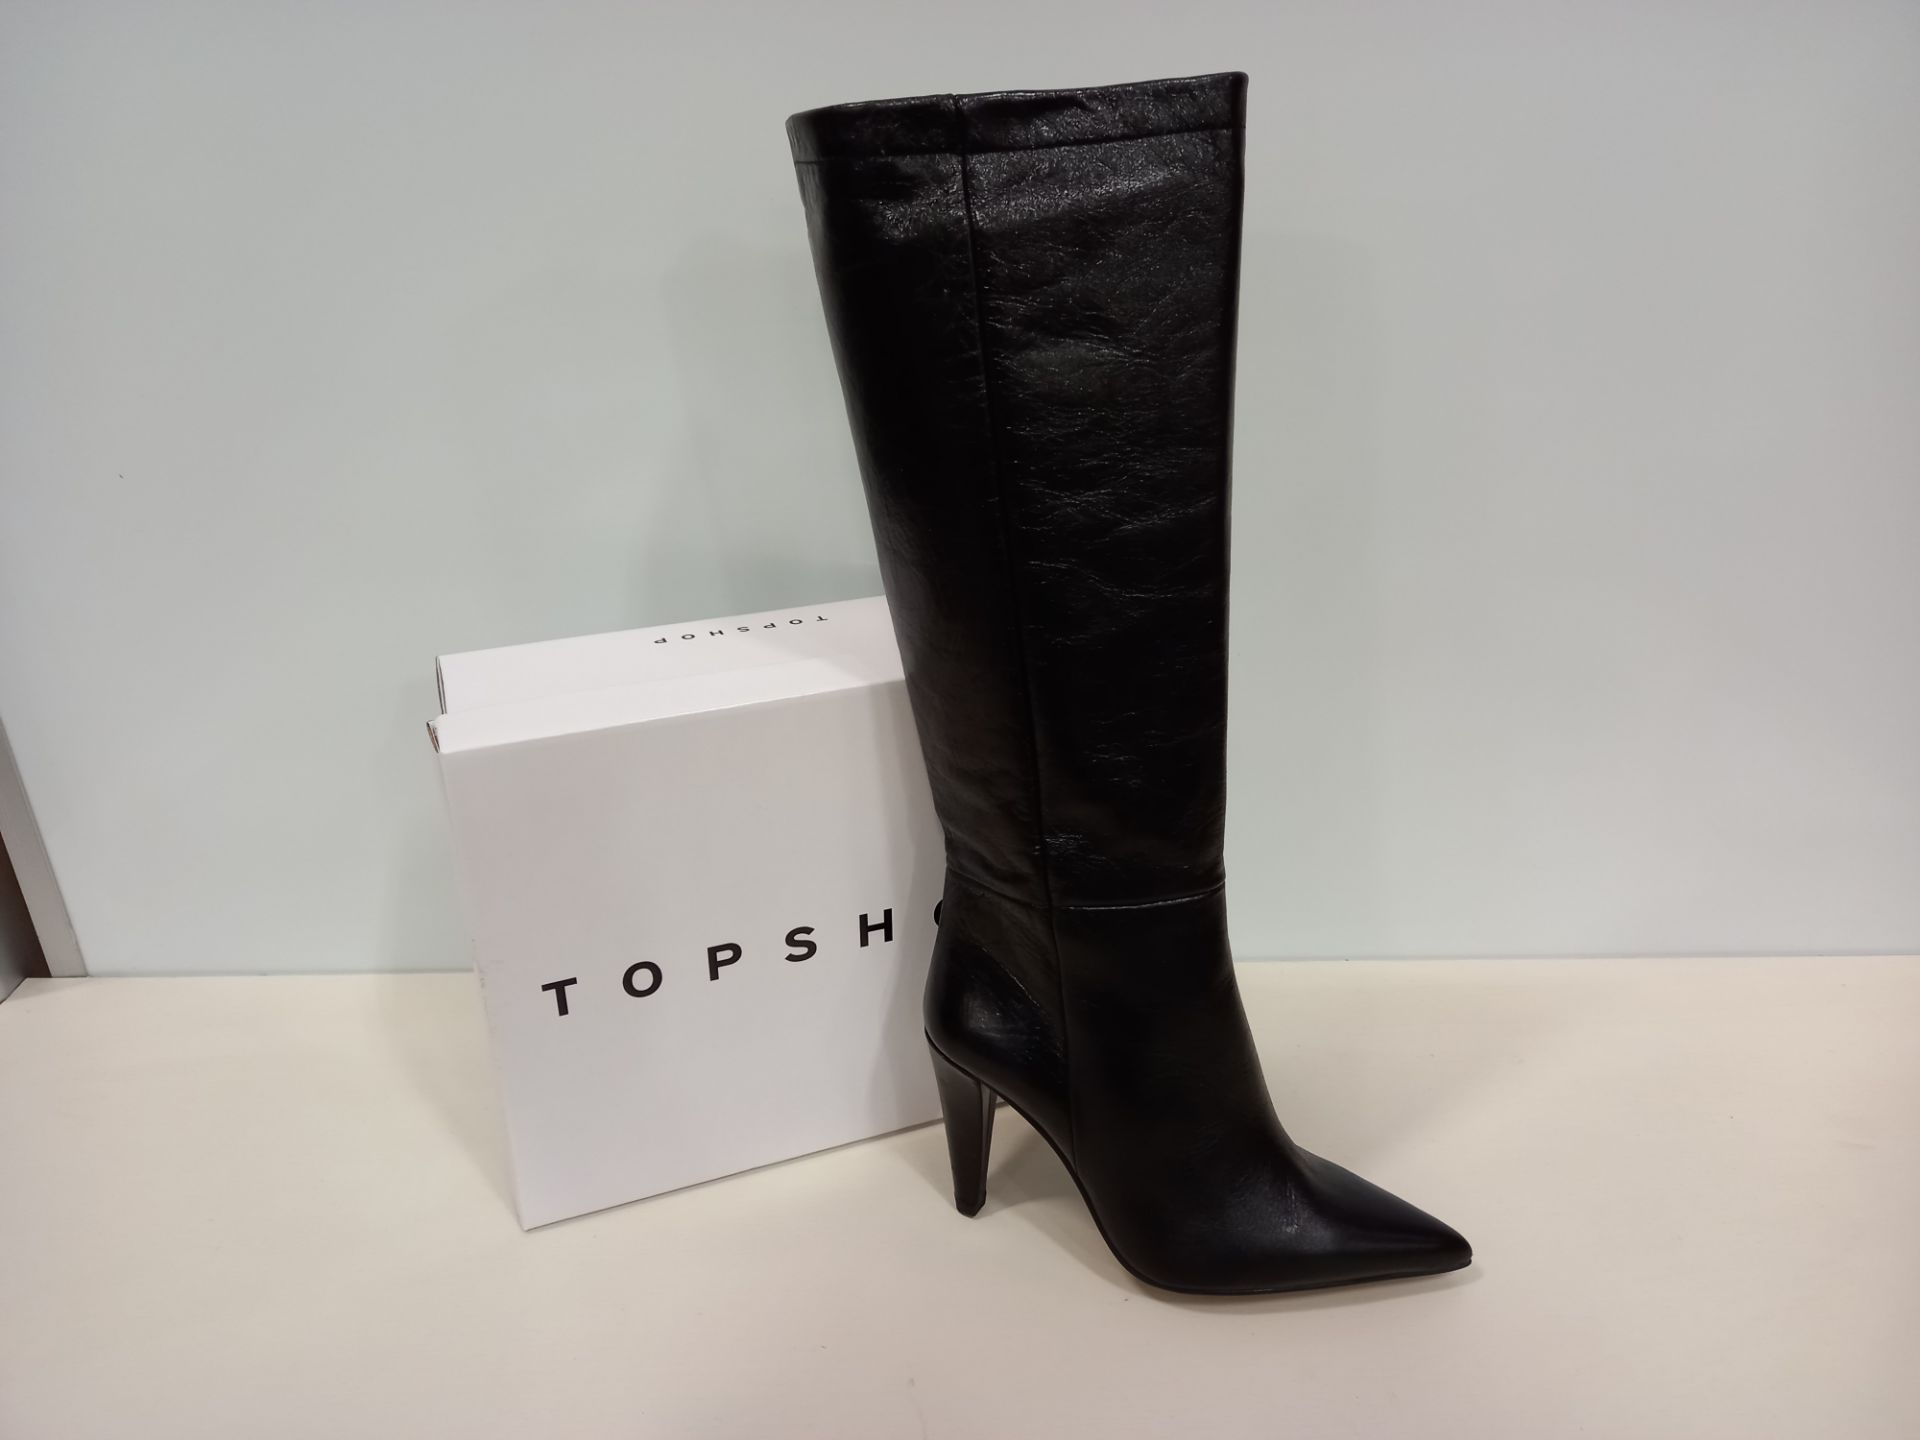 5 X BRAND NEW TOPSHOP TAYLOR BLACK SHOES UK SIZE 6 RRP £120.00 (TOTAL RRP £600.00)